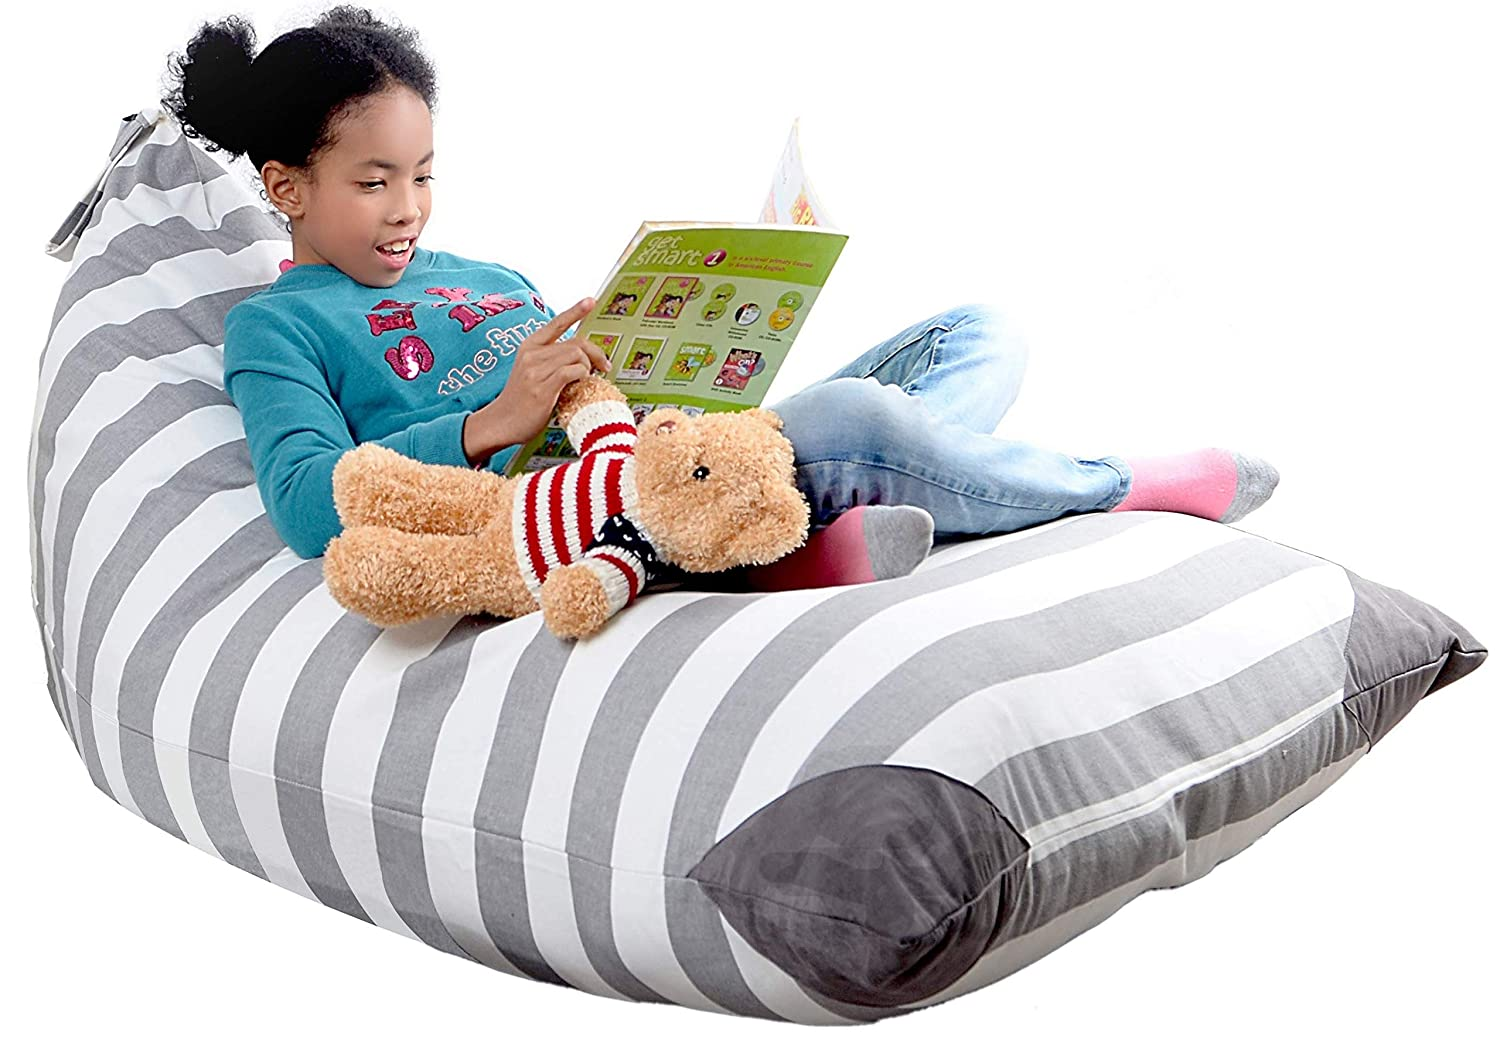 XL Stuffed Animal Storage Bean Bag Chair By mylola   premium quality cotton canvas cover   kids soft toy organizer fits 200L   makes comfy lounger